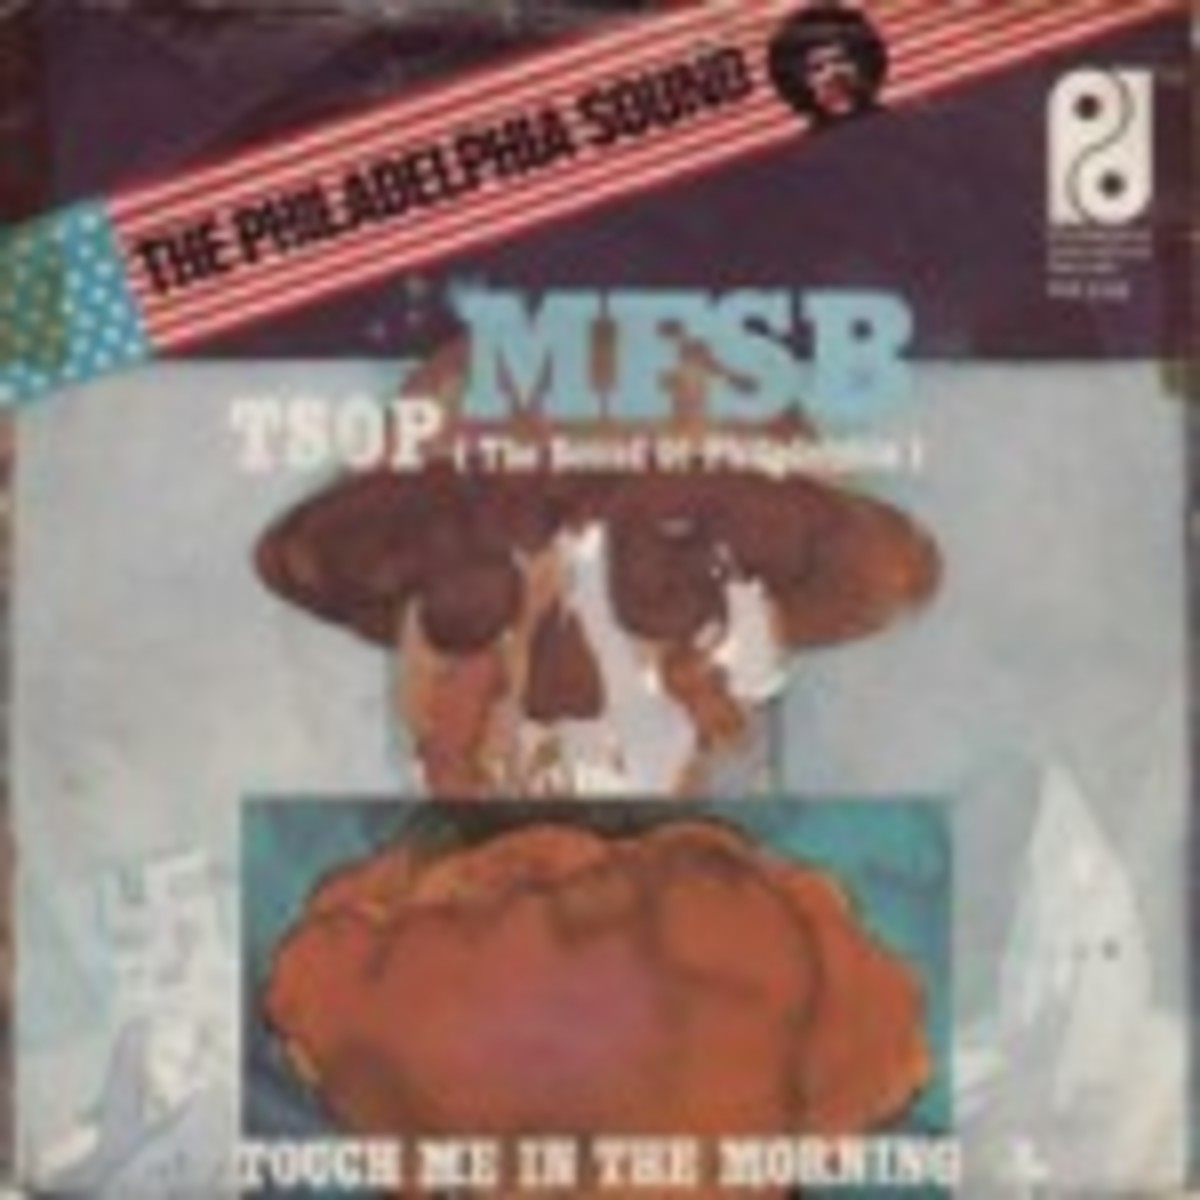 MFSB TSOP The Sound of Philadelphia